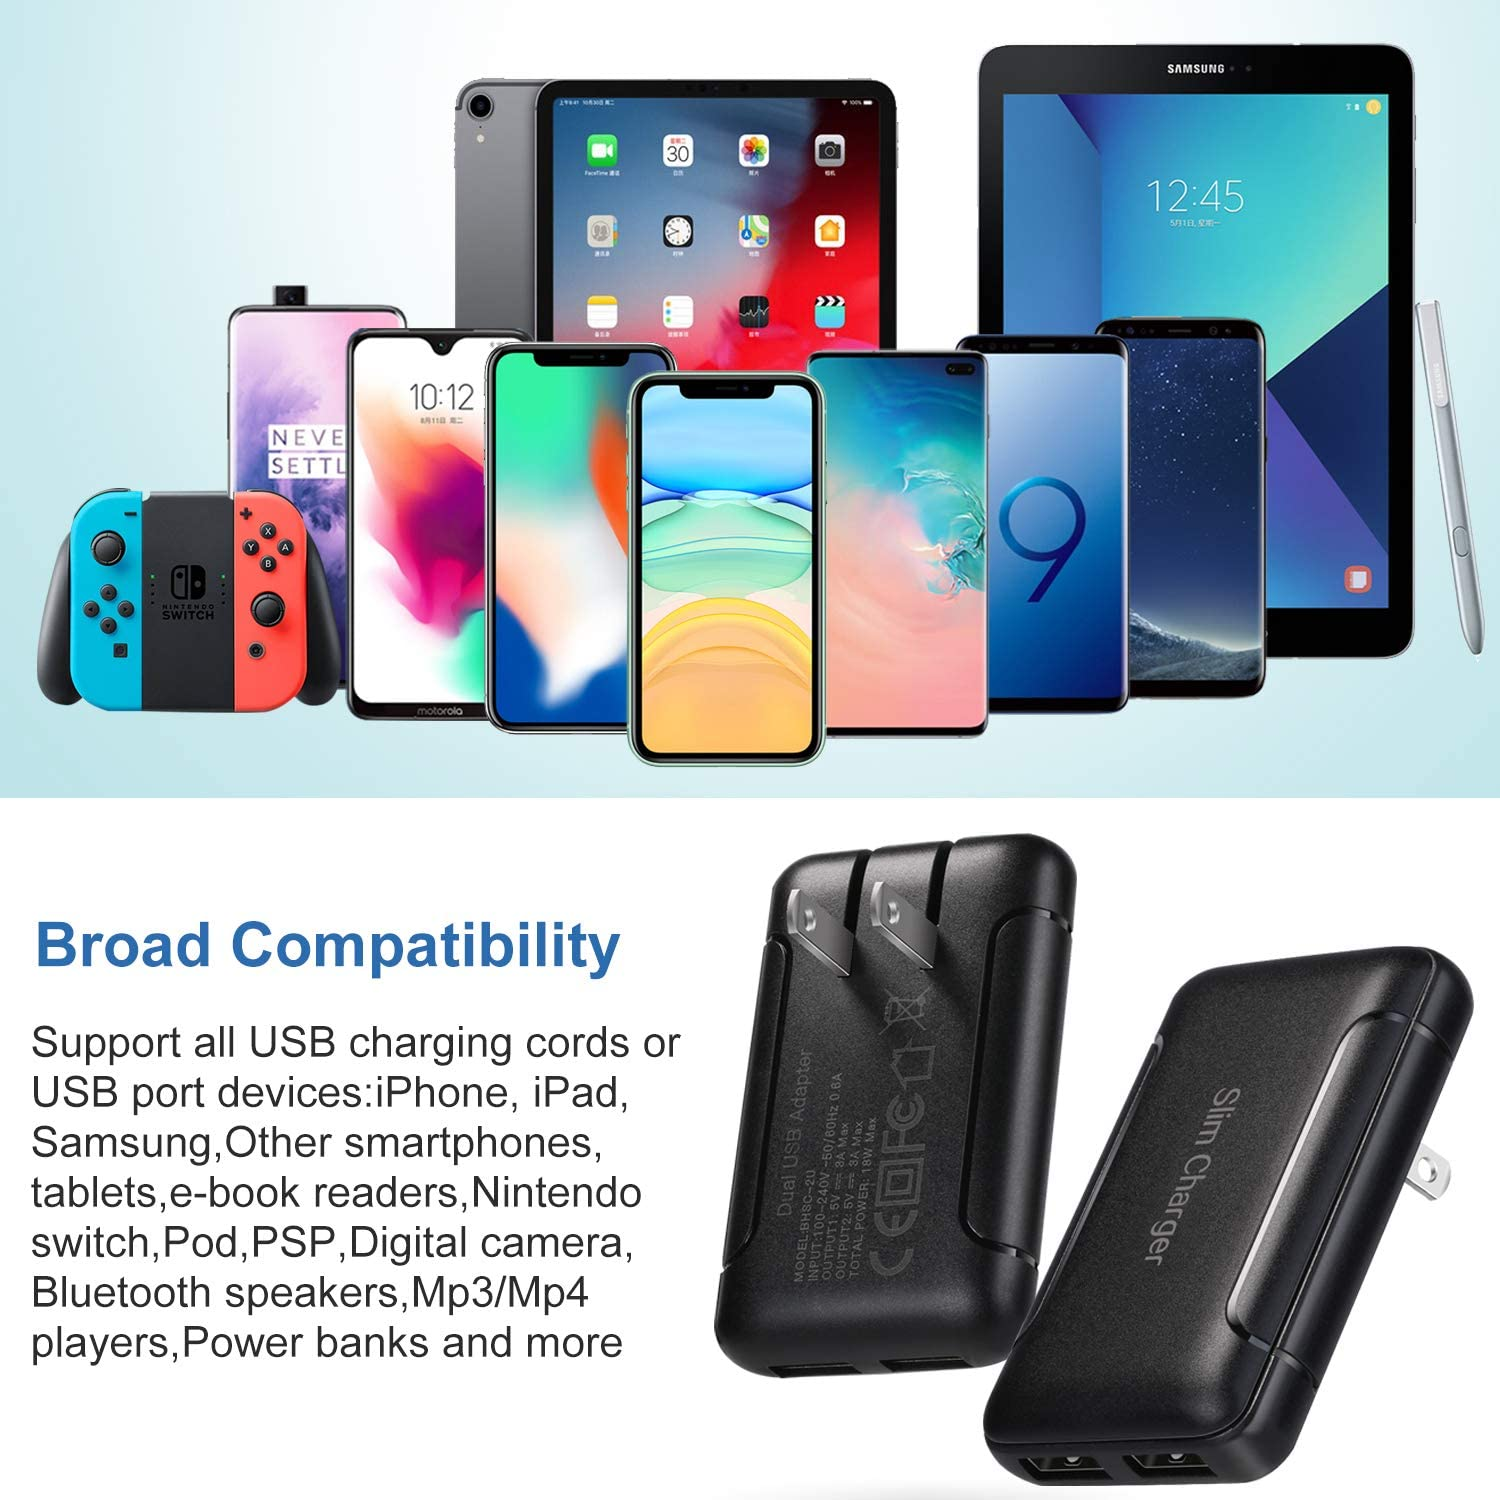 USB Wall Charger Nexus and More-Black Pofesun Dual Port USB Slim Charging Block Power Adapter with Foldable Plug Compatible for iPhone Xs//XS Max//XR//X//8 Plus//7//6S Plus,iPad,Samsung Galaxy,HTC,Moto,LG